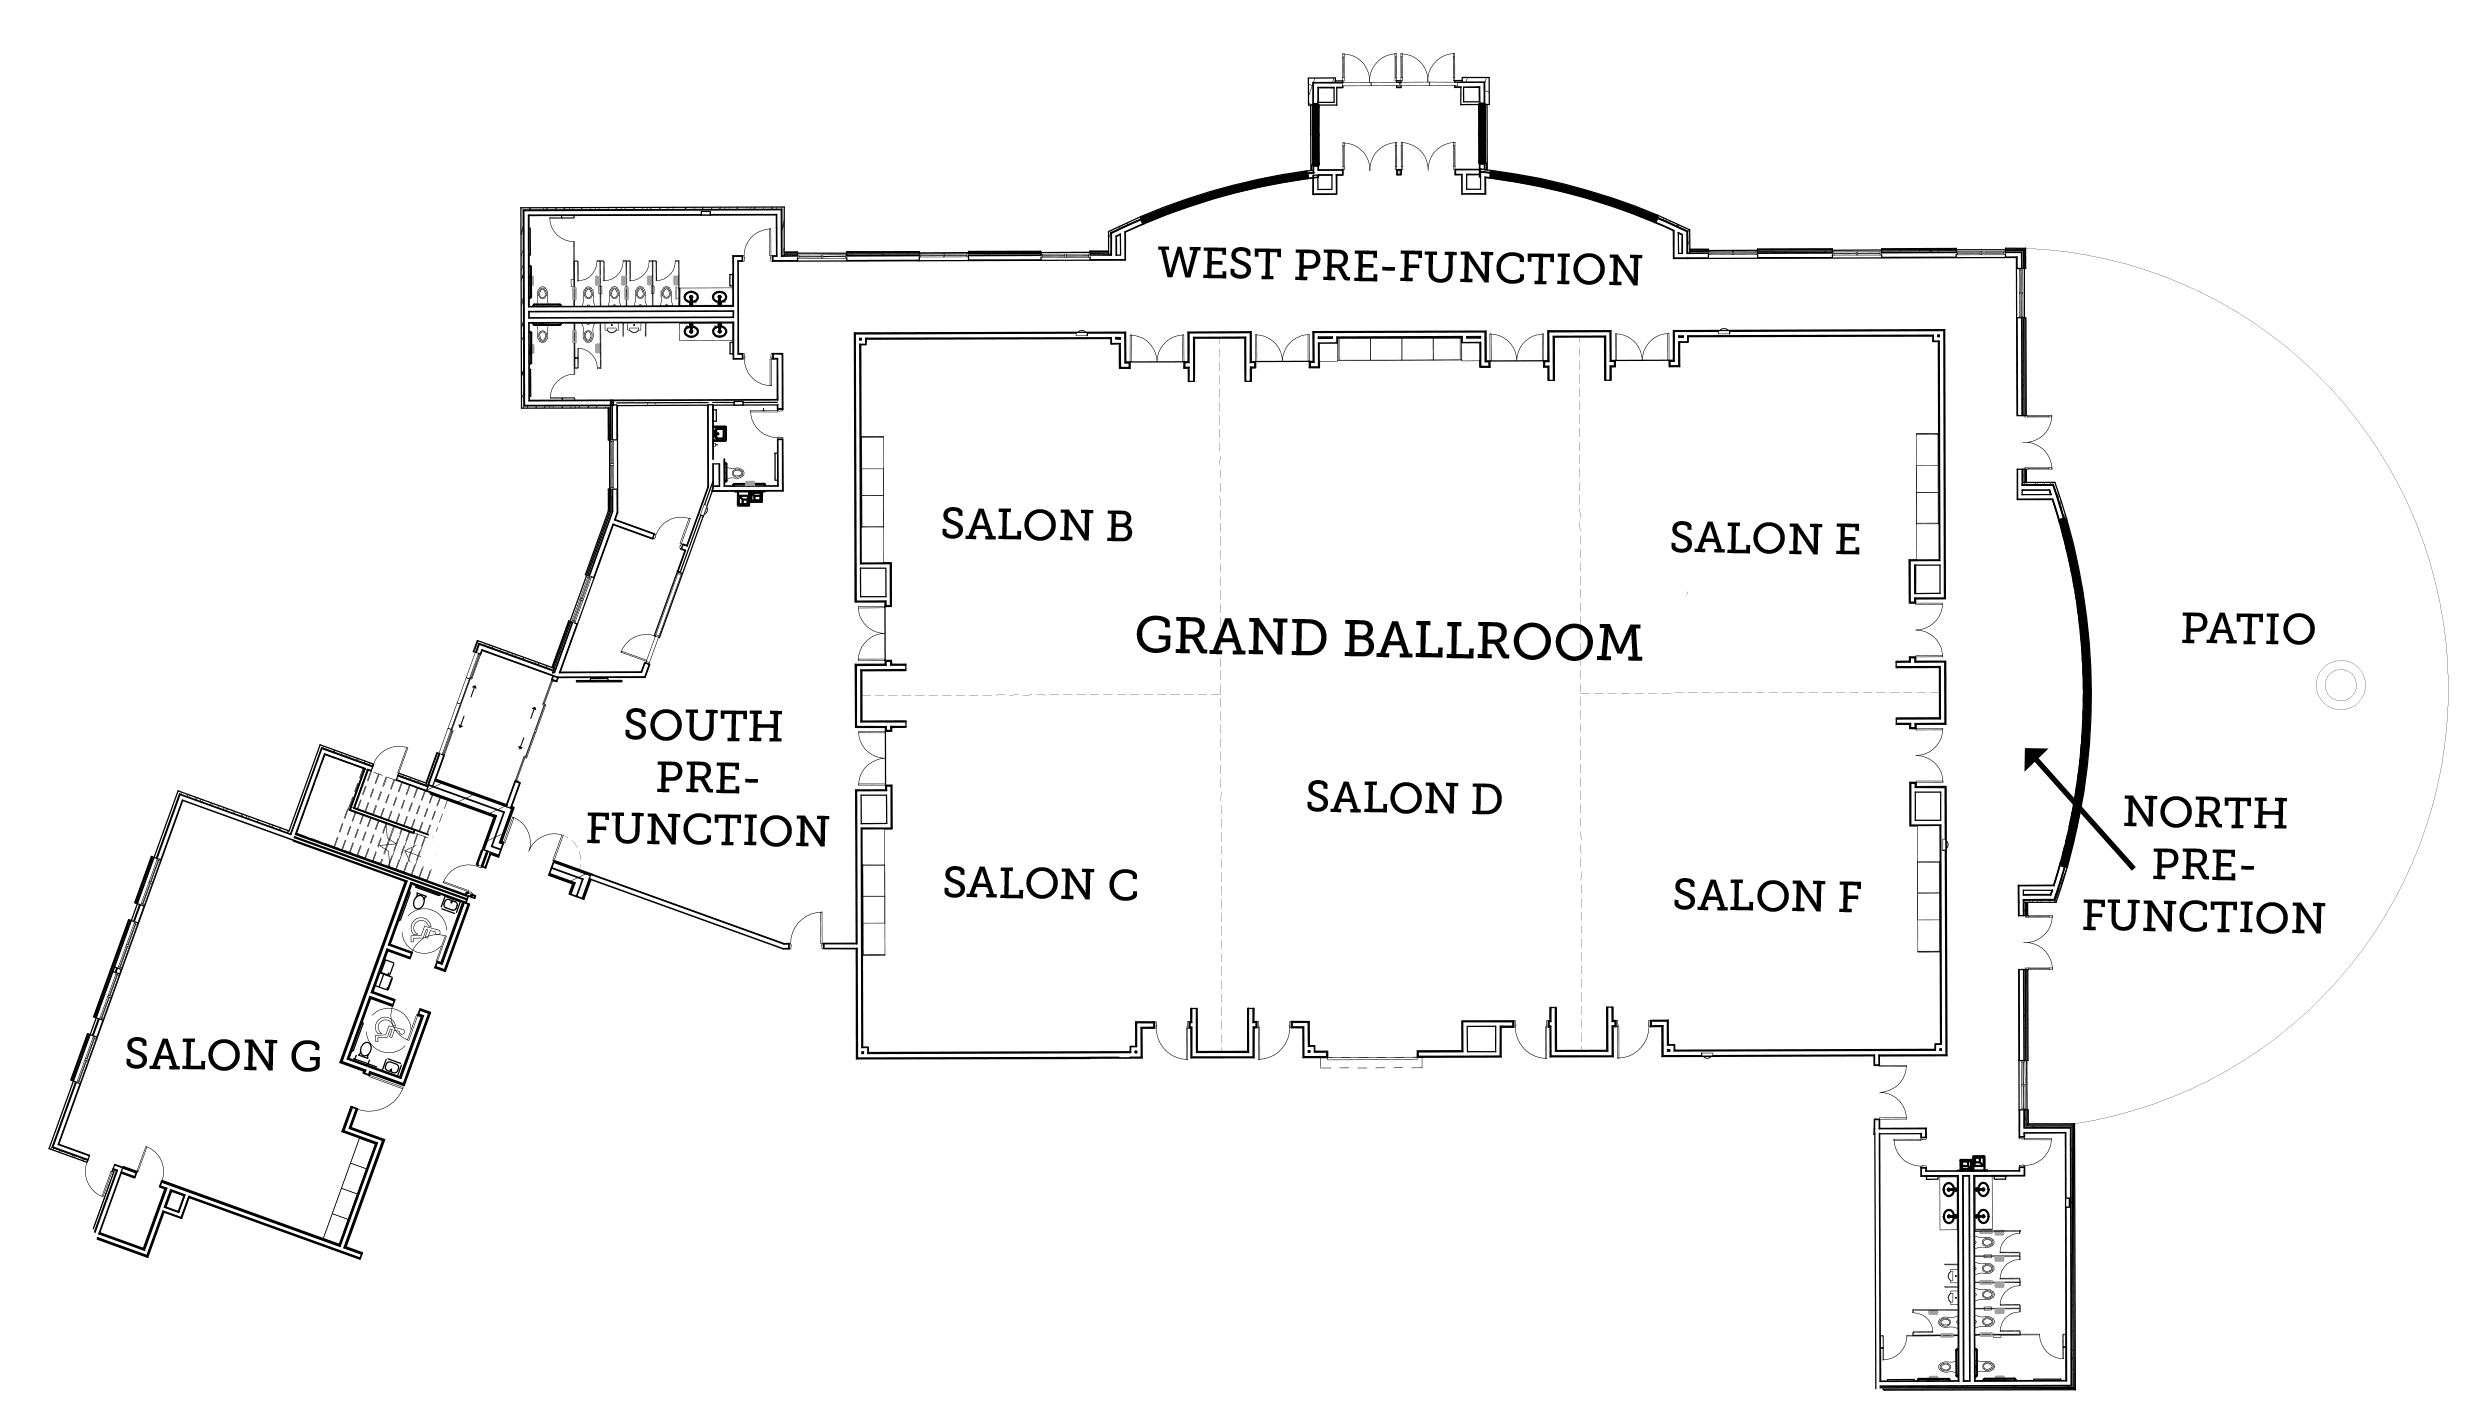 Hotel Convention Space Layout